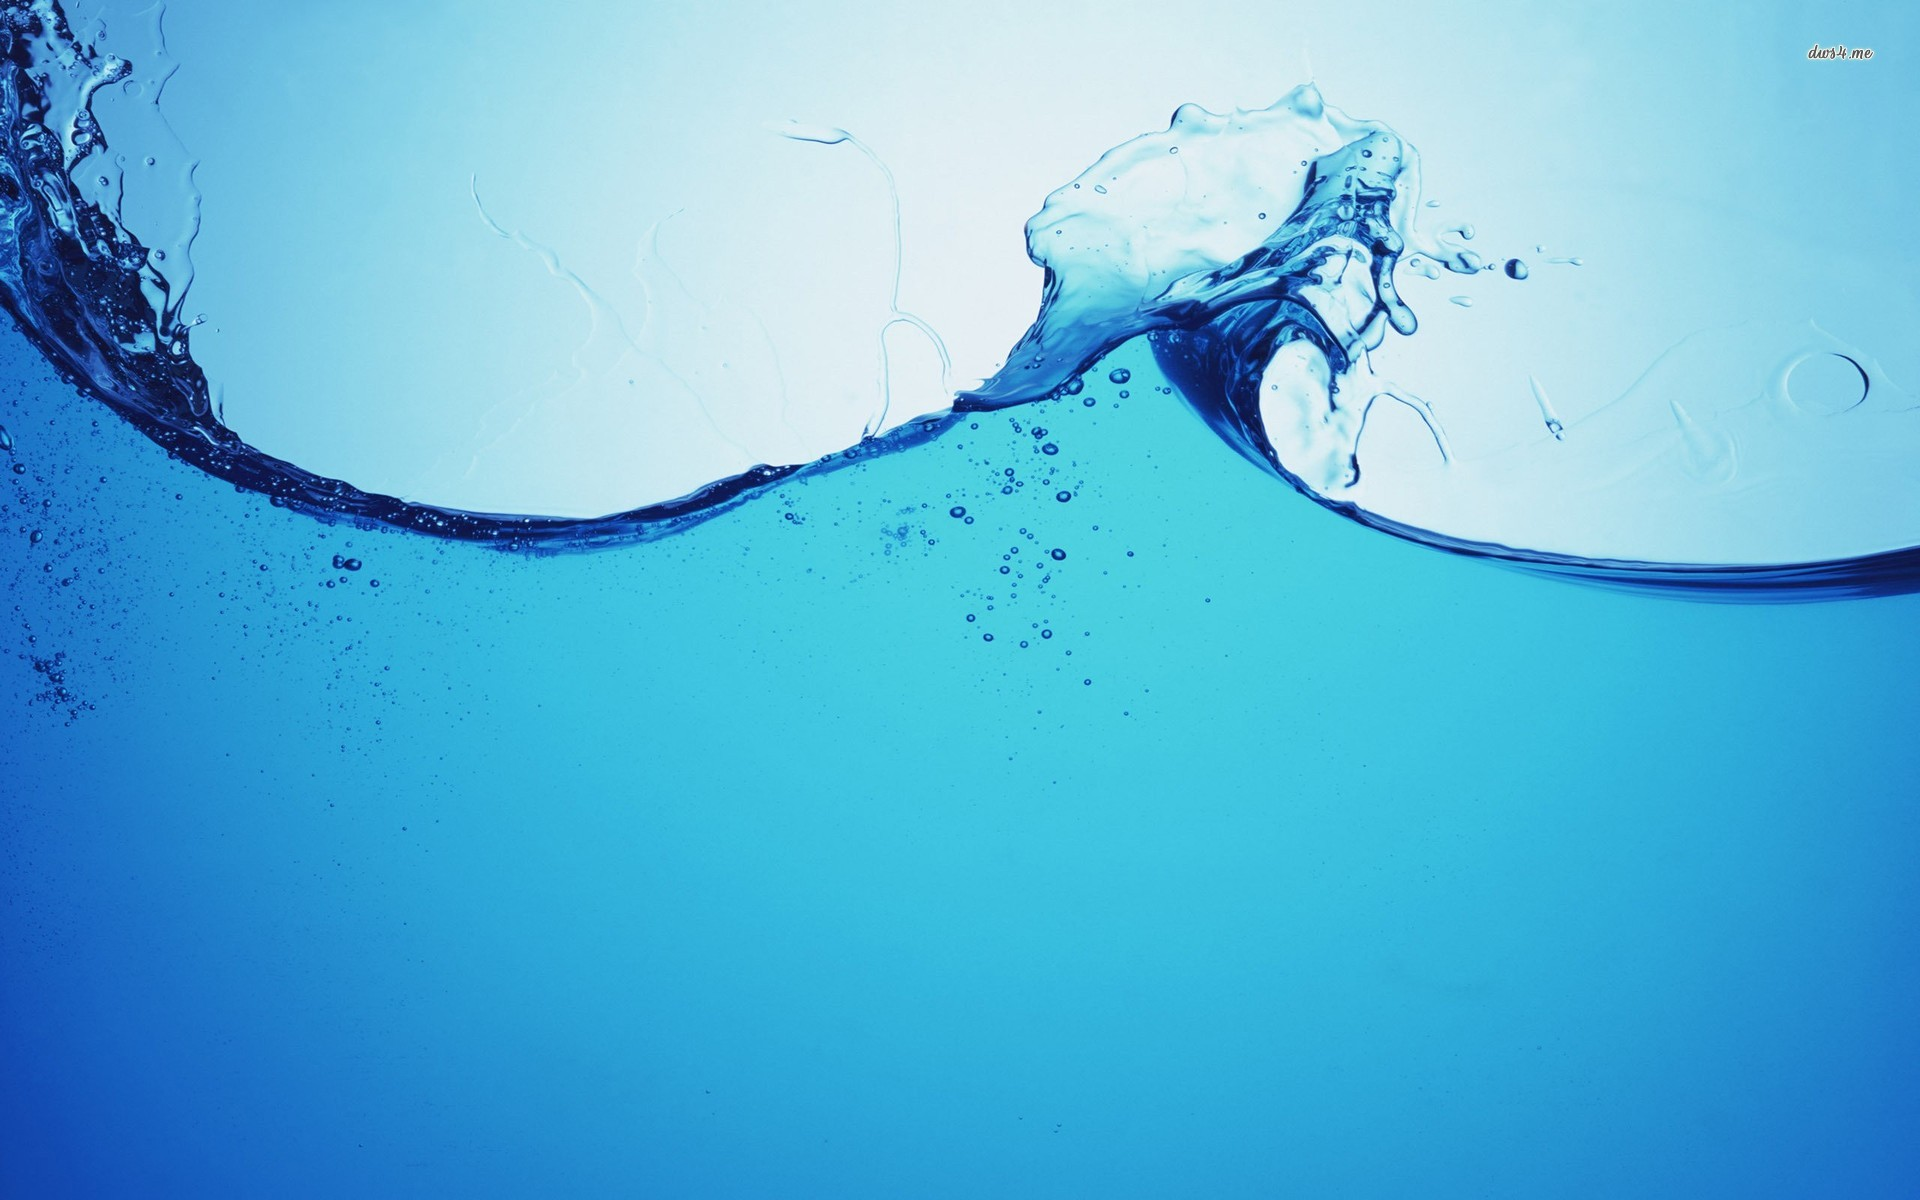 ... Water splash wallpaper 1920x1200 ...